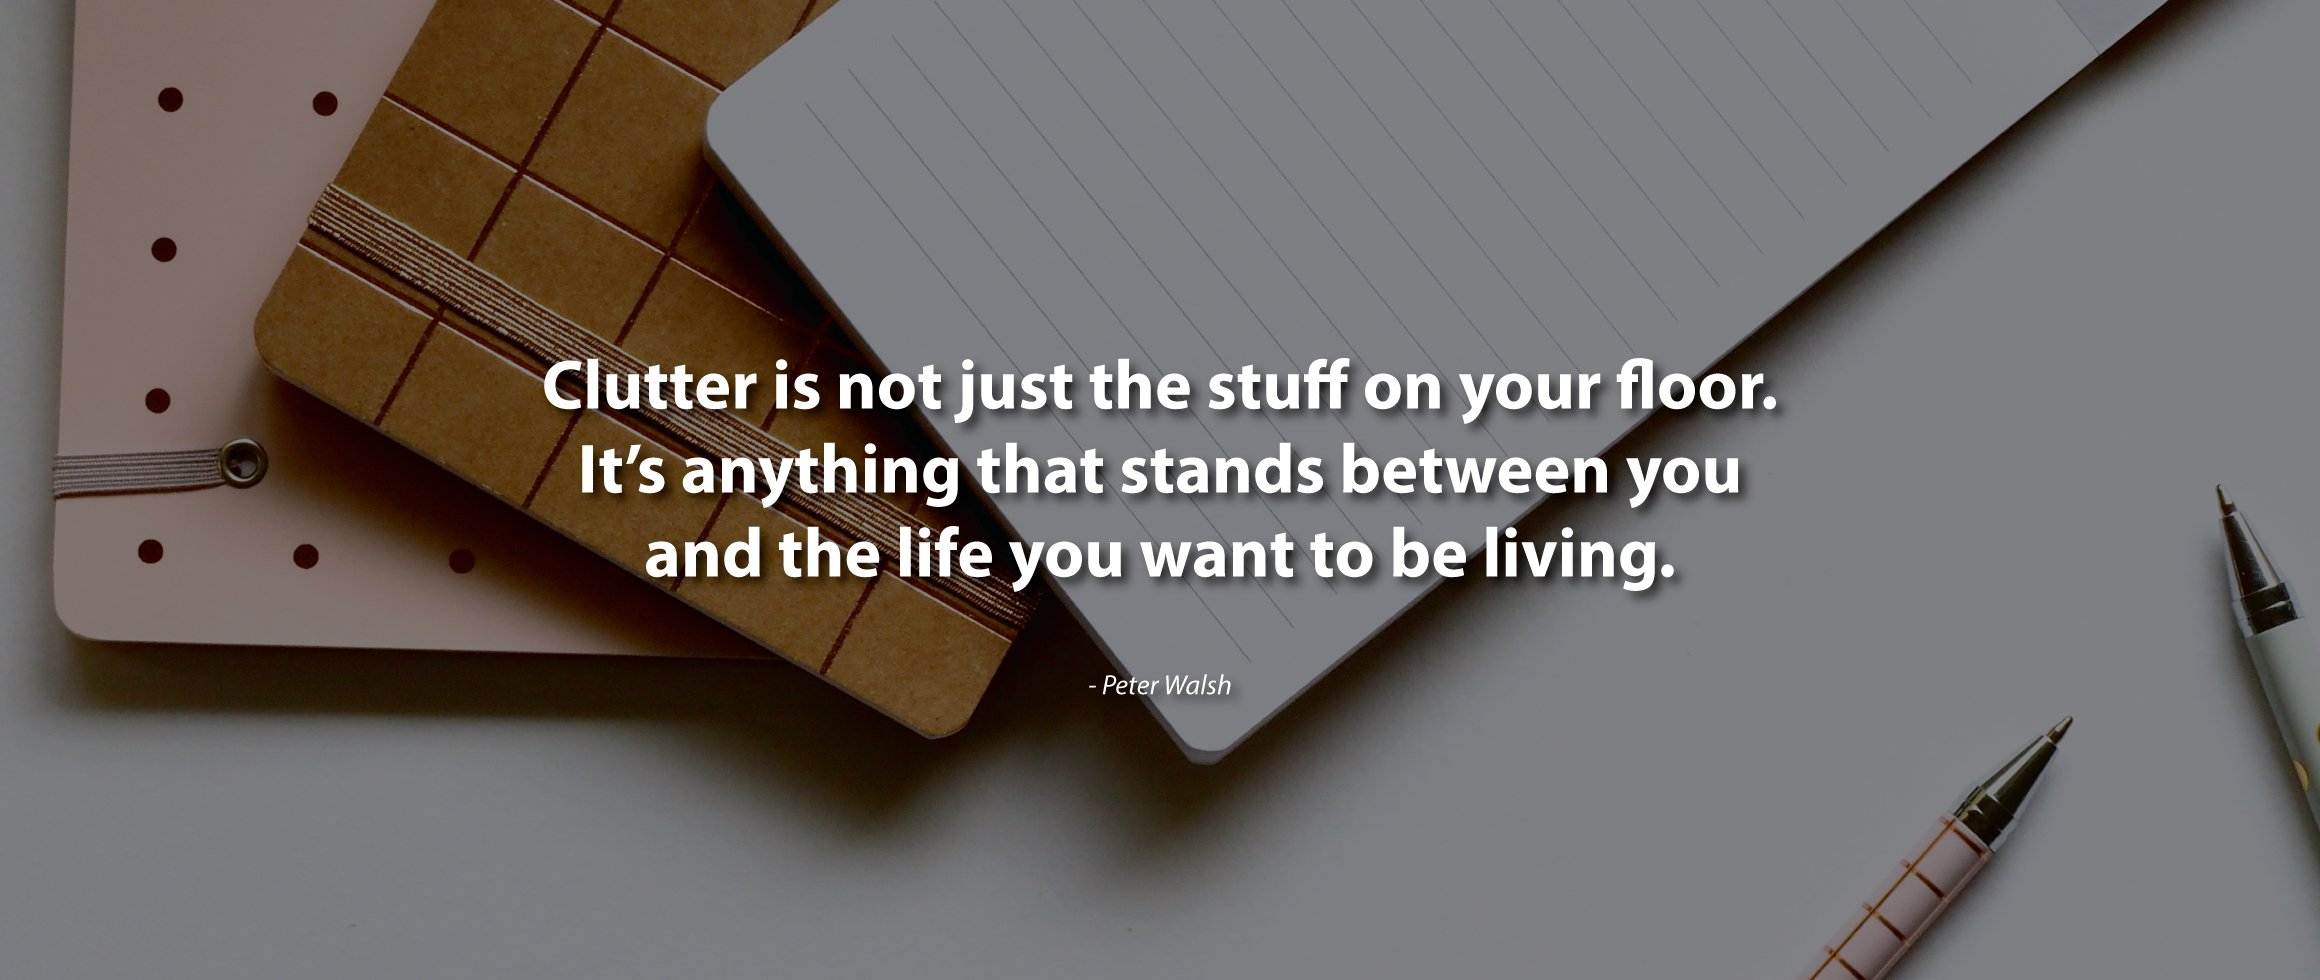 ways on how to declutter life